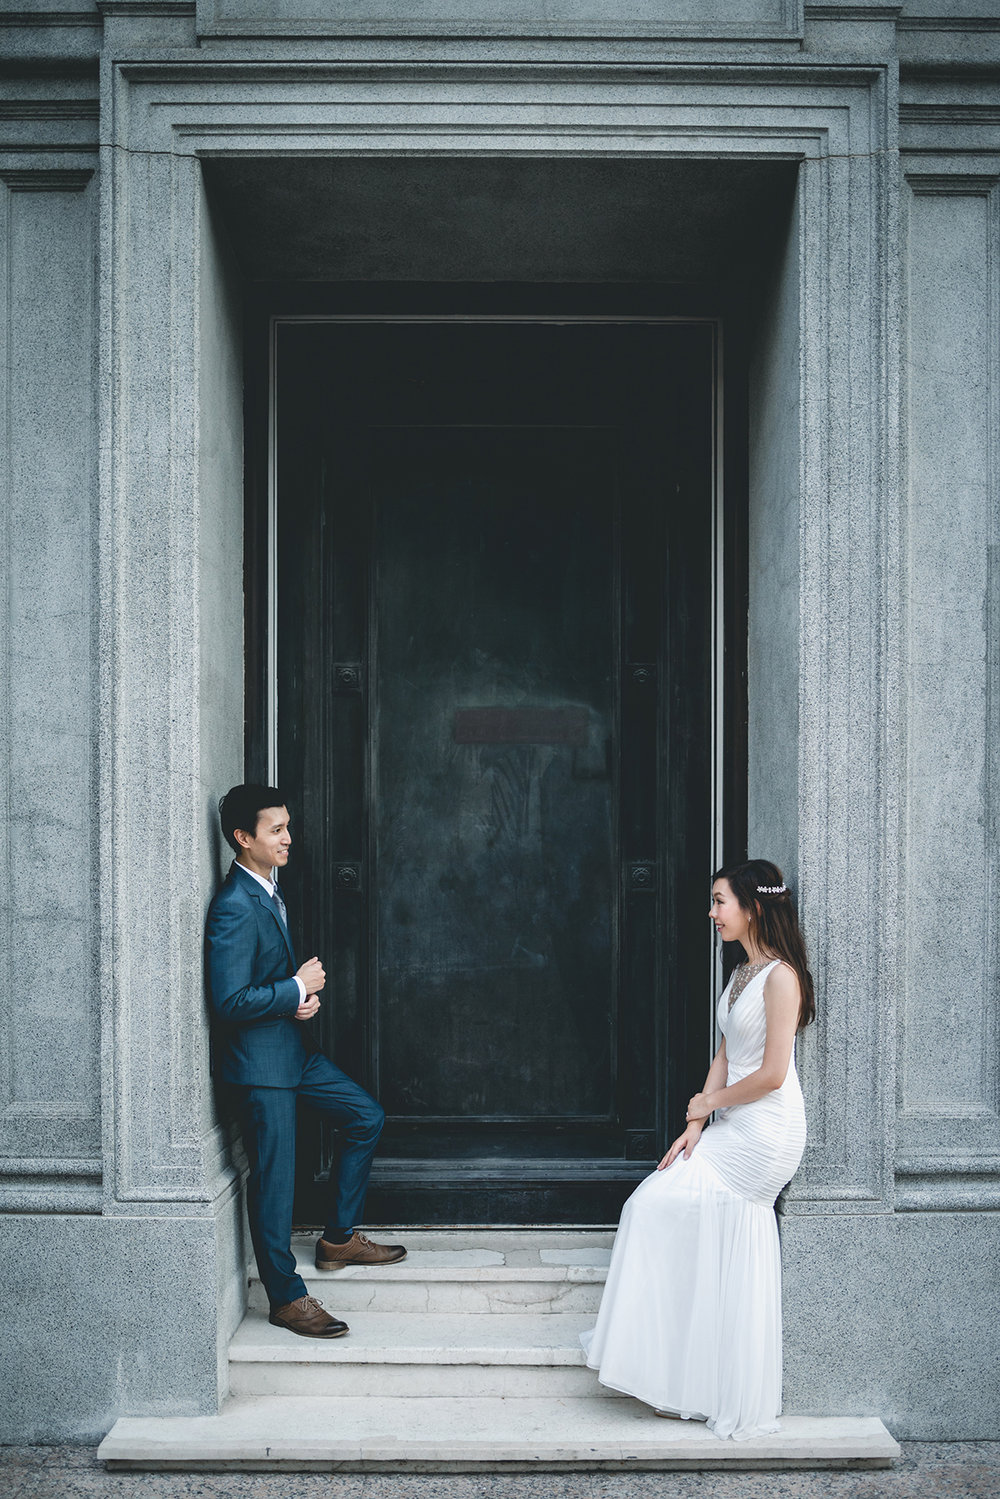 Prewedding National Gallery 00011a.JPG